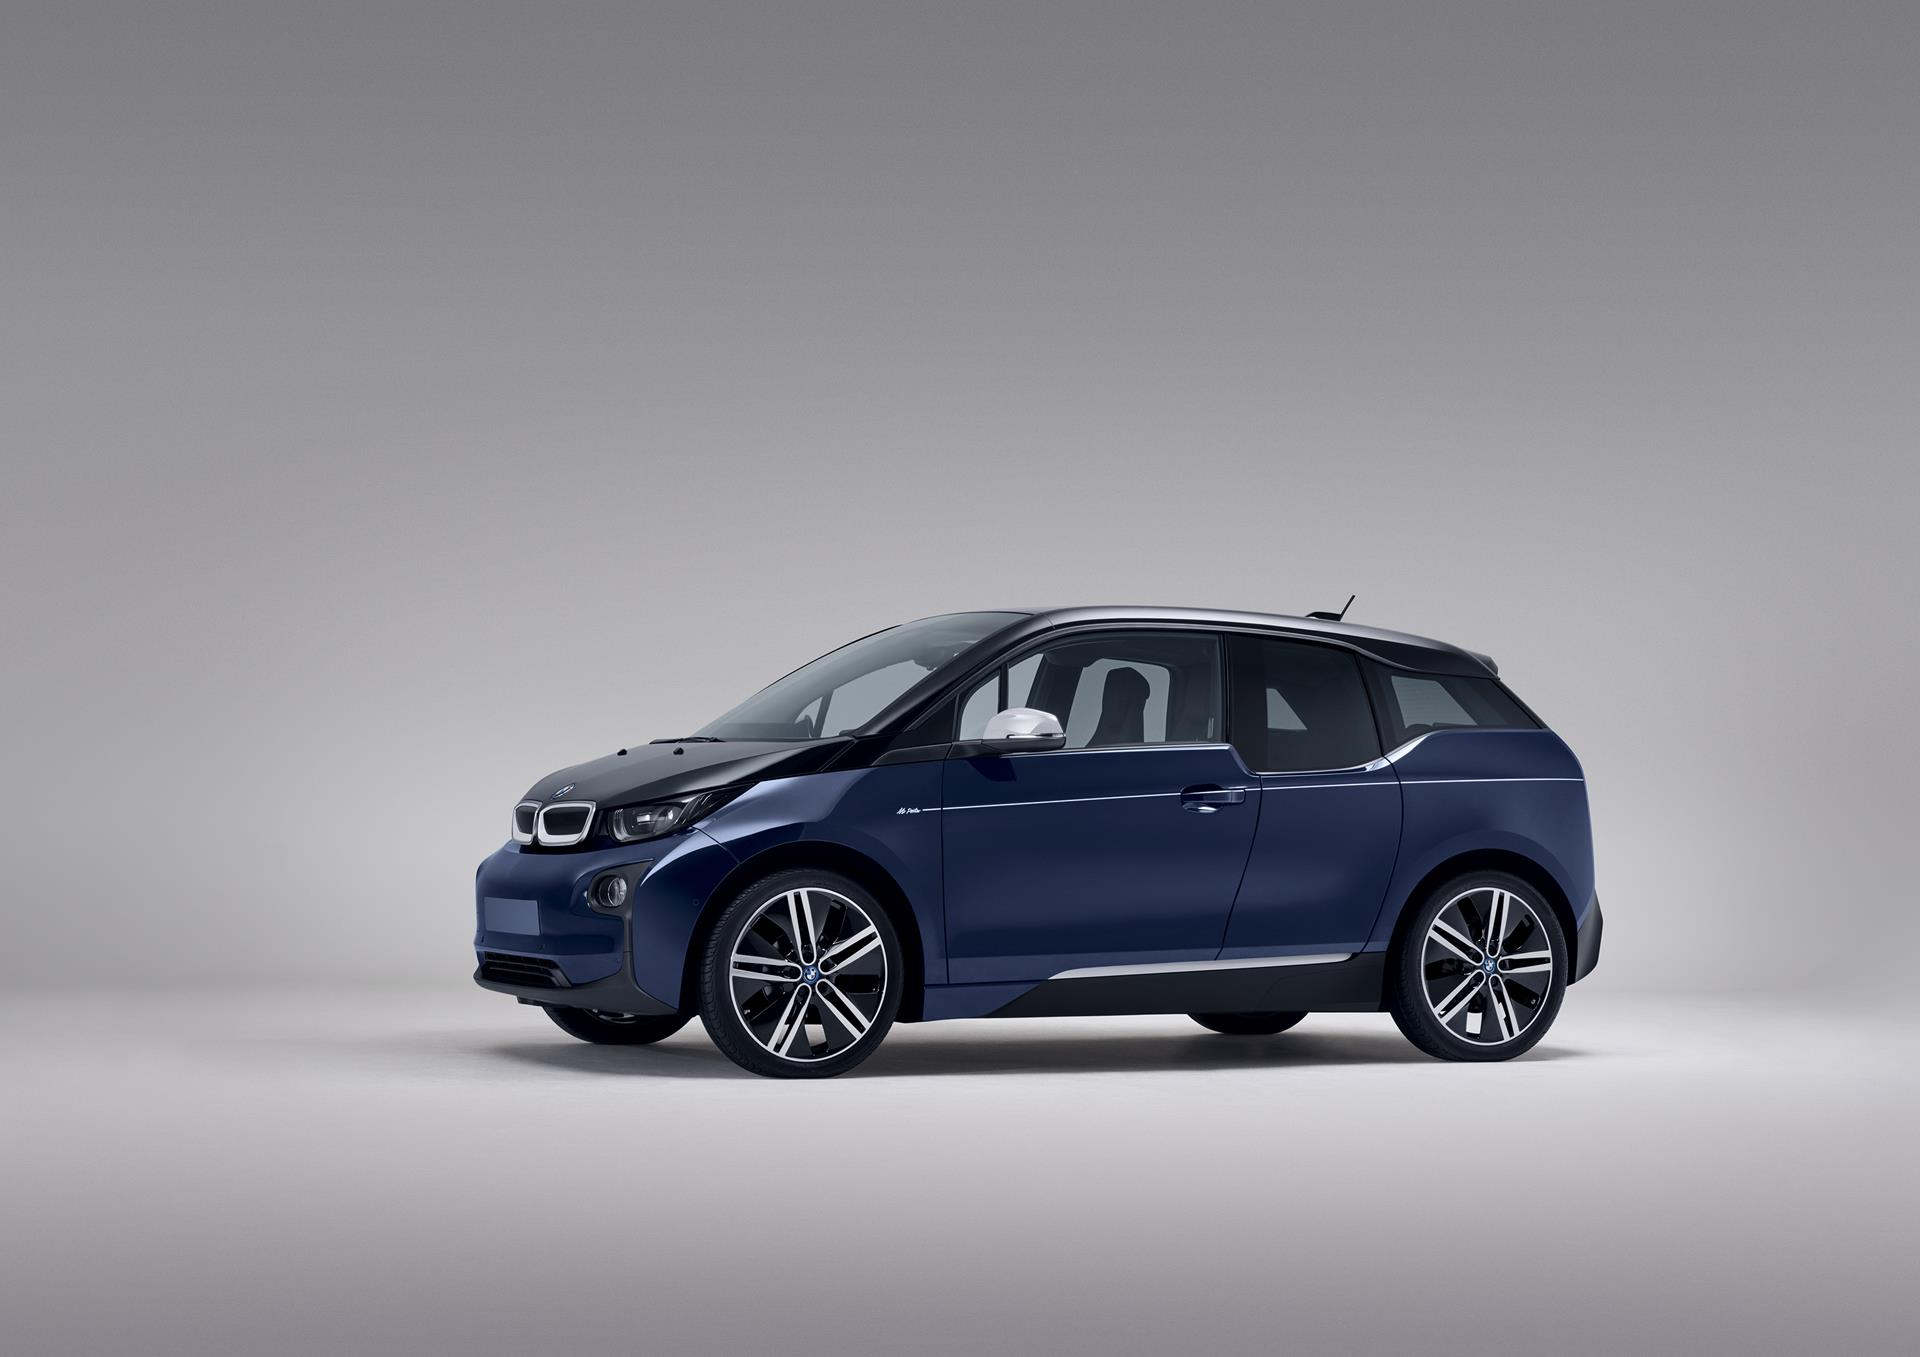 2016 bmw i3 mr porter edition. Black Bedroom Furniture Sets. Home Design Ideas